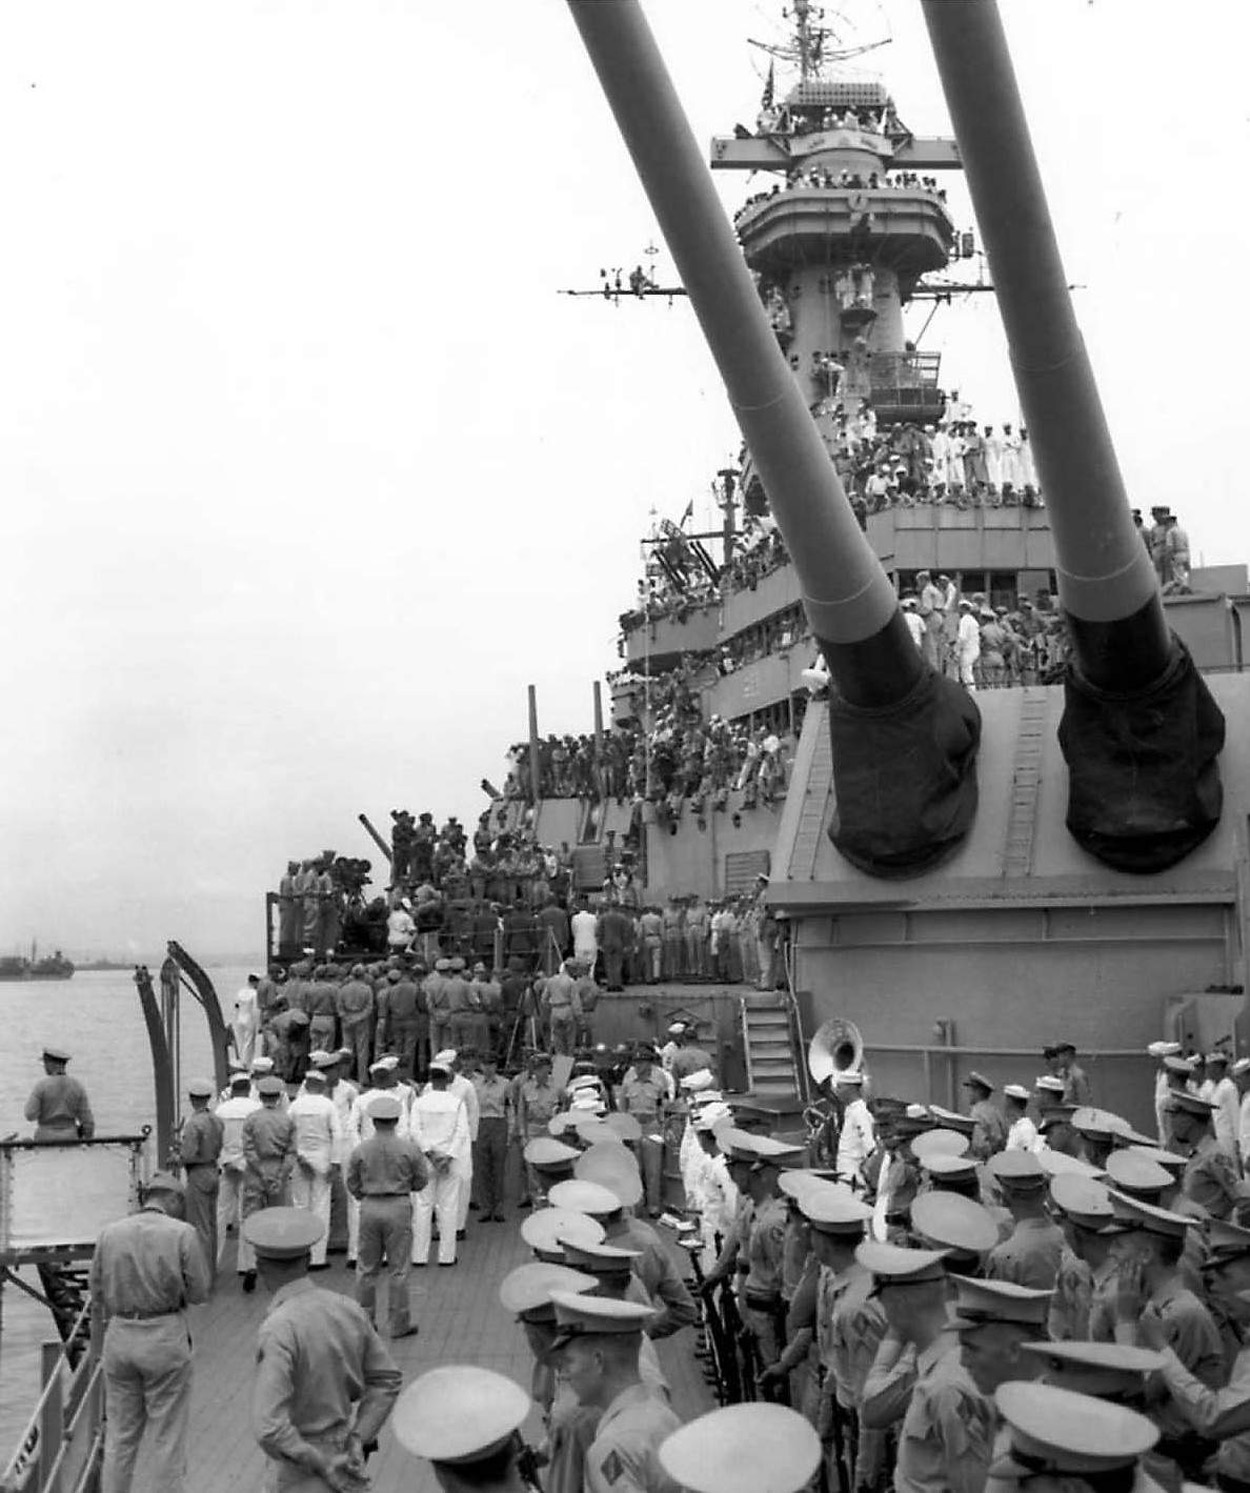 https://upload.wikimedia.org/wikipedia/commons/6/64/USS_Missouri_Japanes_surrender_Marine_guard_company_and_Navy_band.jpg